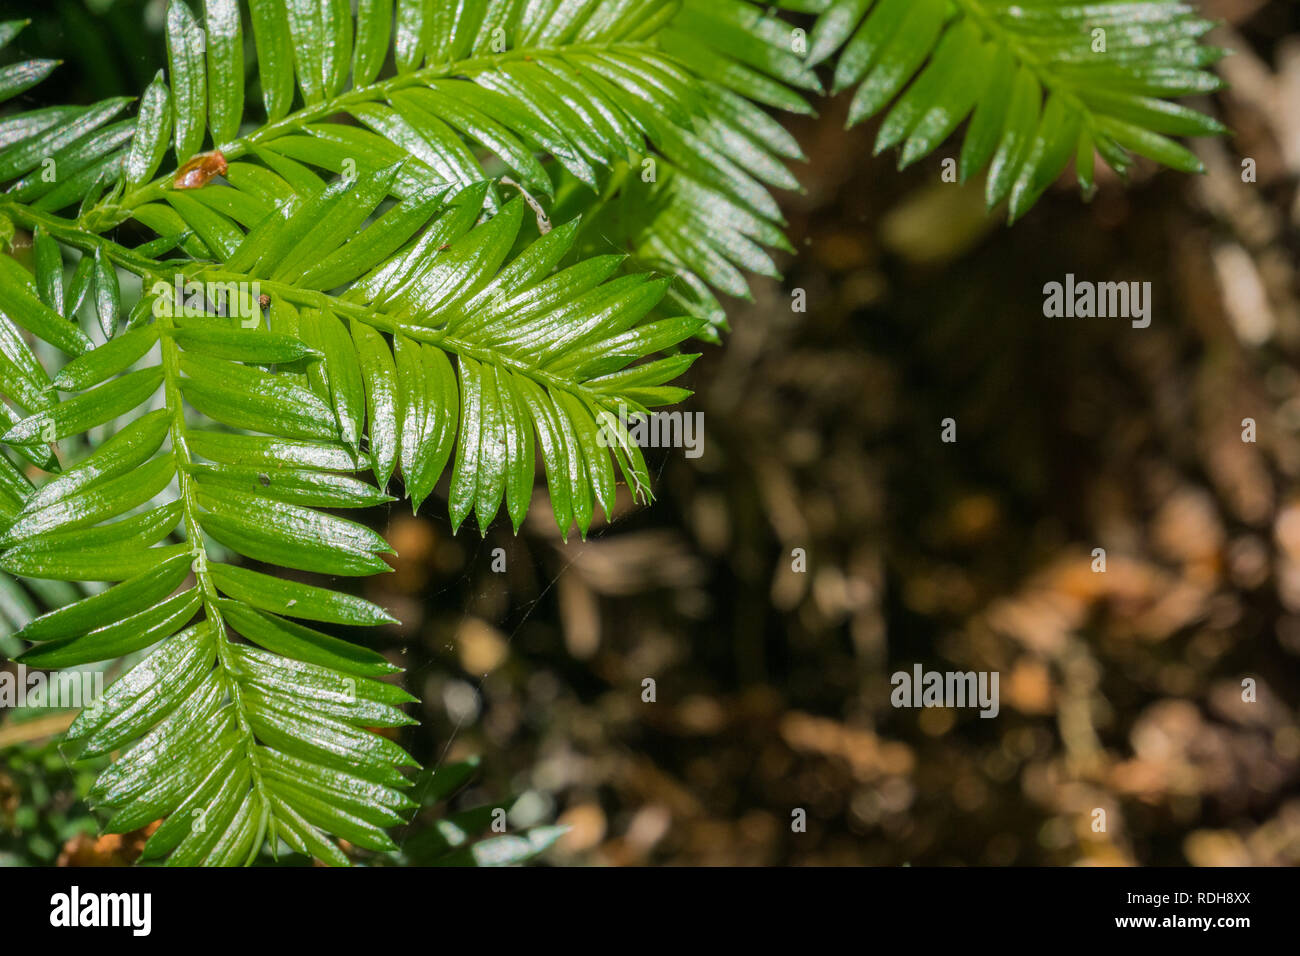 New redwood trees branches, California Stock Photo